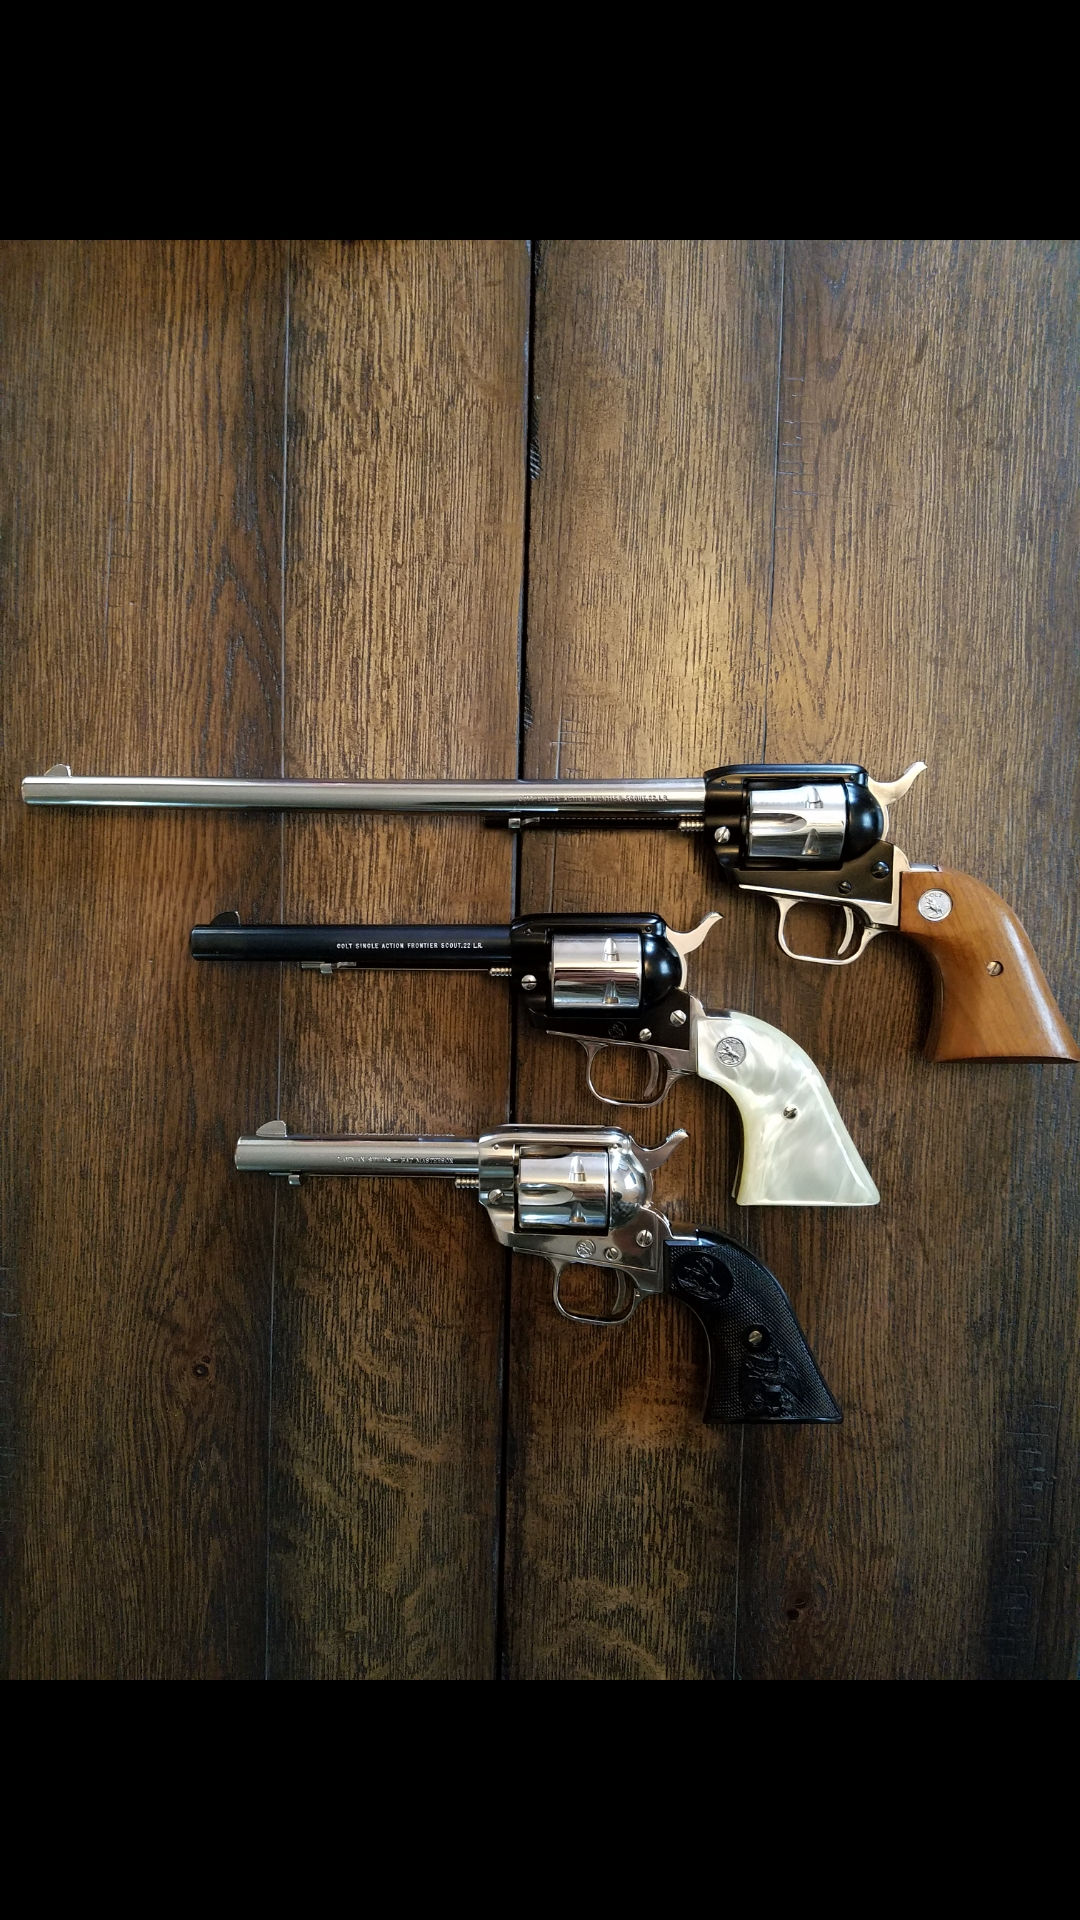 Share some Colt love - a picture thread-screenshot_20190228-152414_gallery_1573319351994.jpg